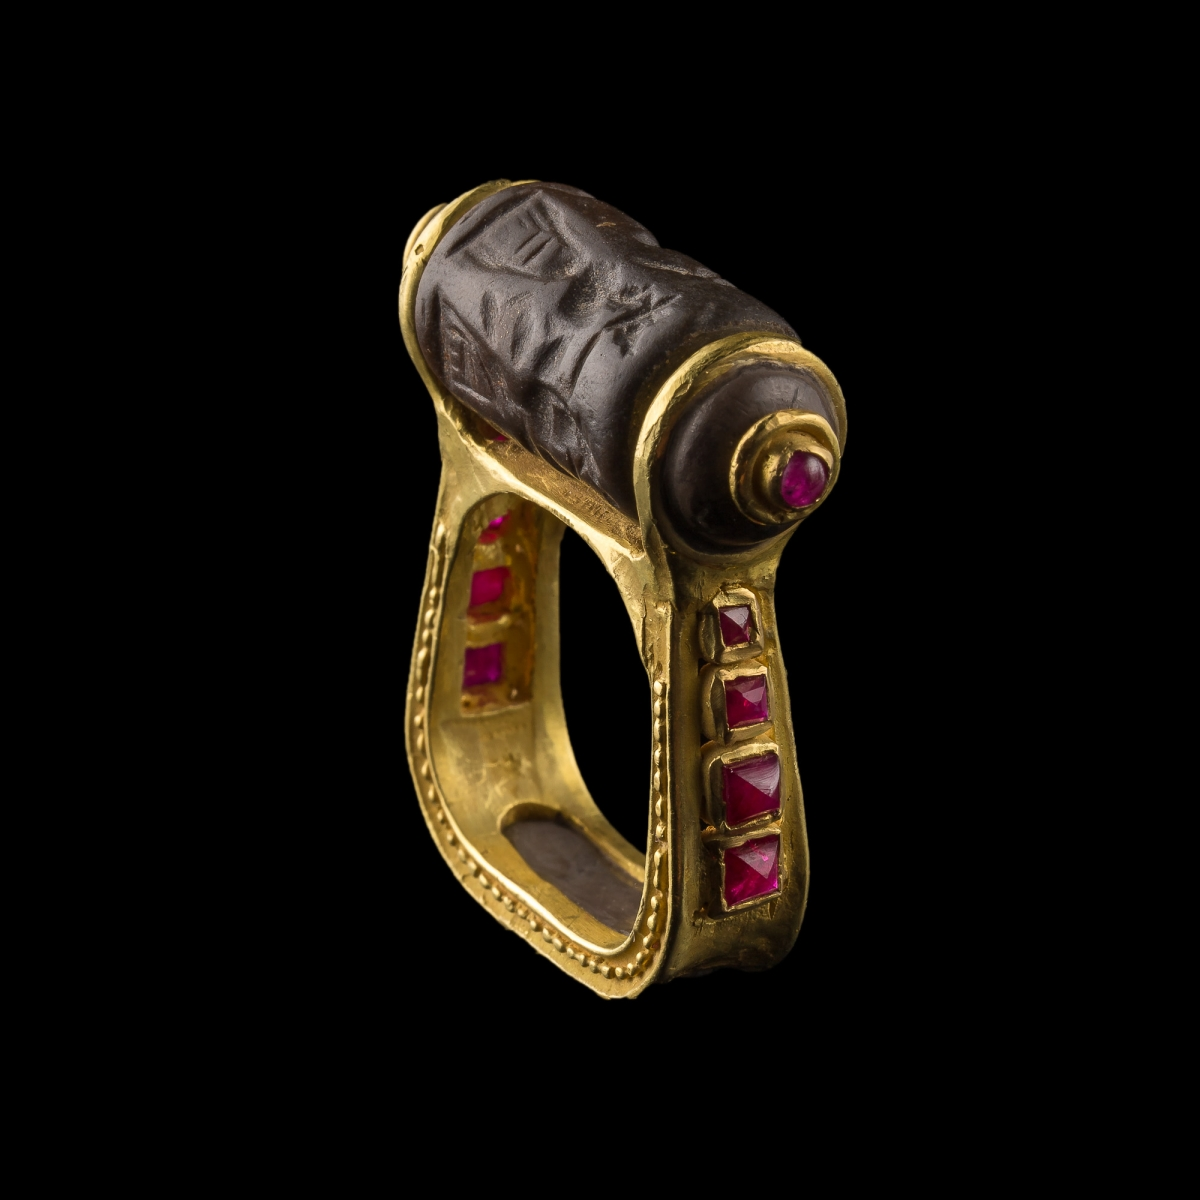 Photo of a-ring-with-seal-from-mesopotamia-and-rubies-galerie-golconda-specialist-jewels-for-collectors-of-the-ancient-civilisations